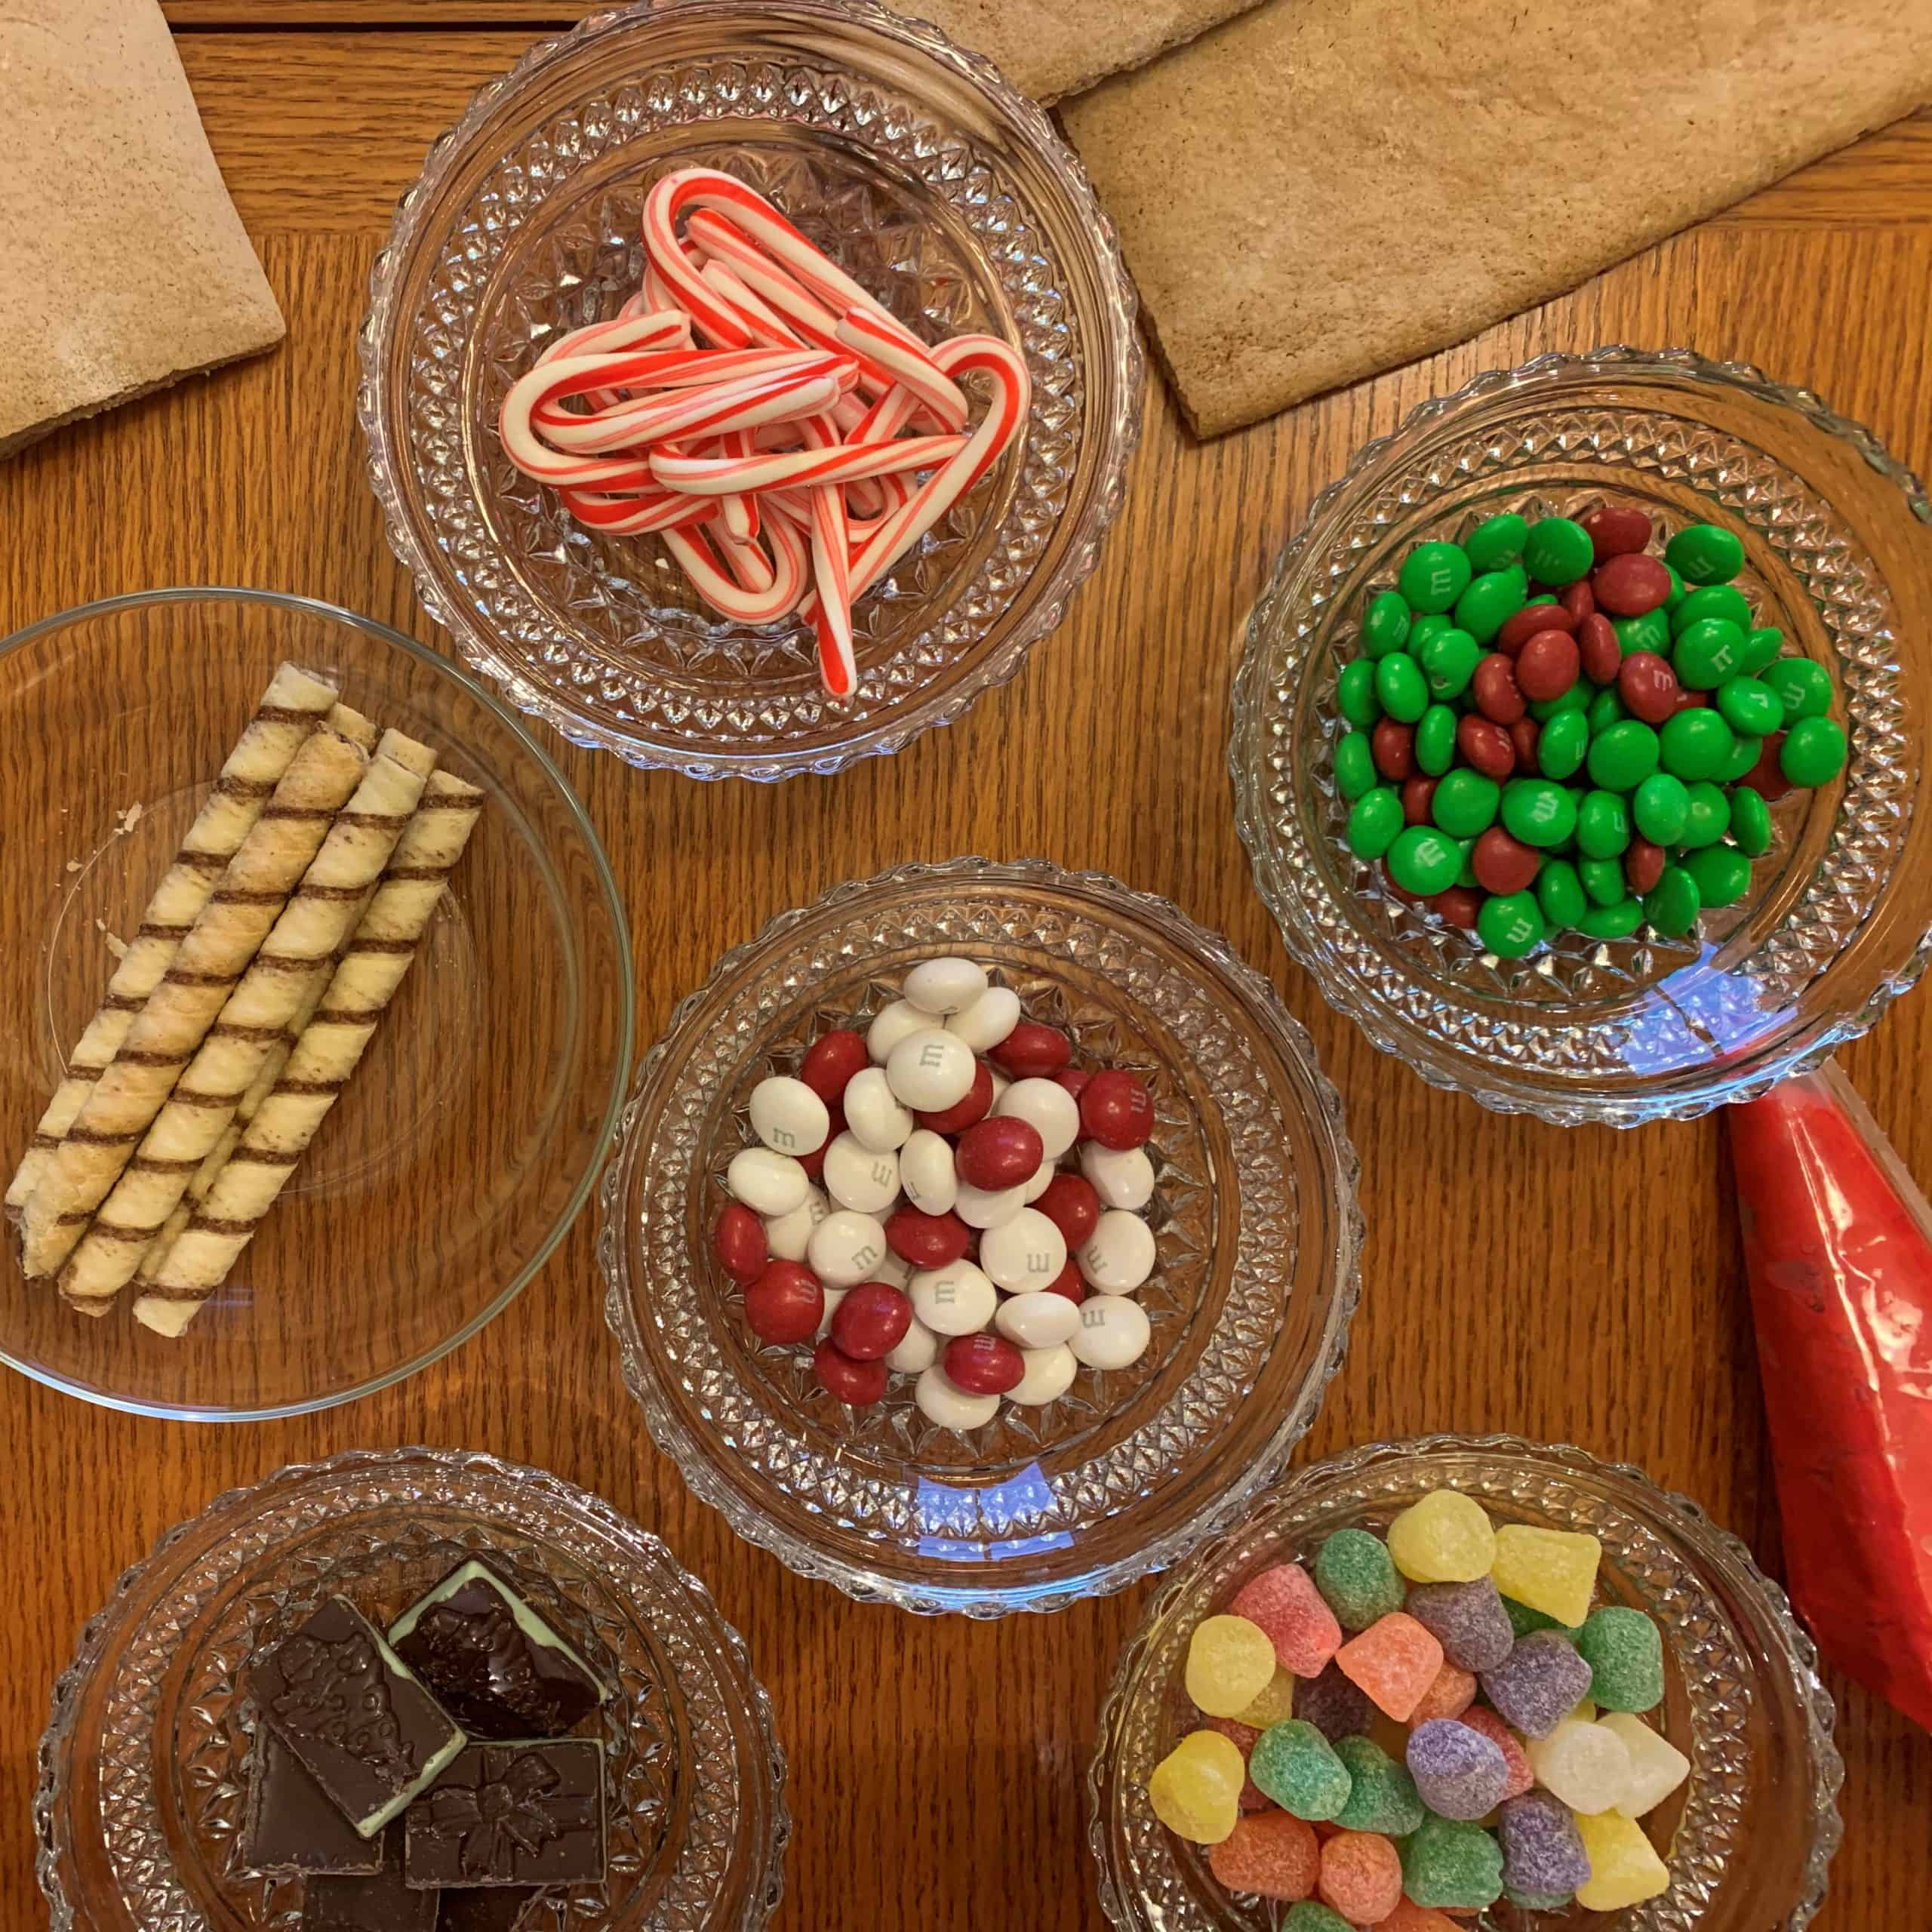 Gingerbread house components such as candy, cookies, and icing